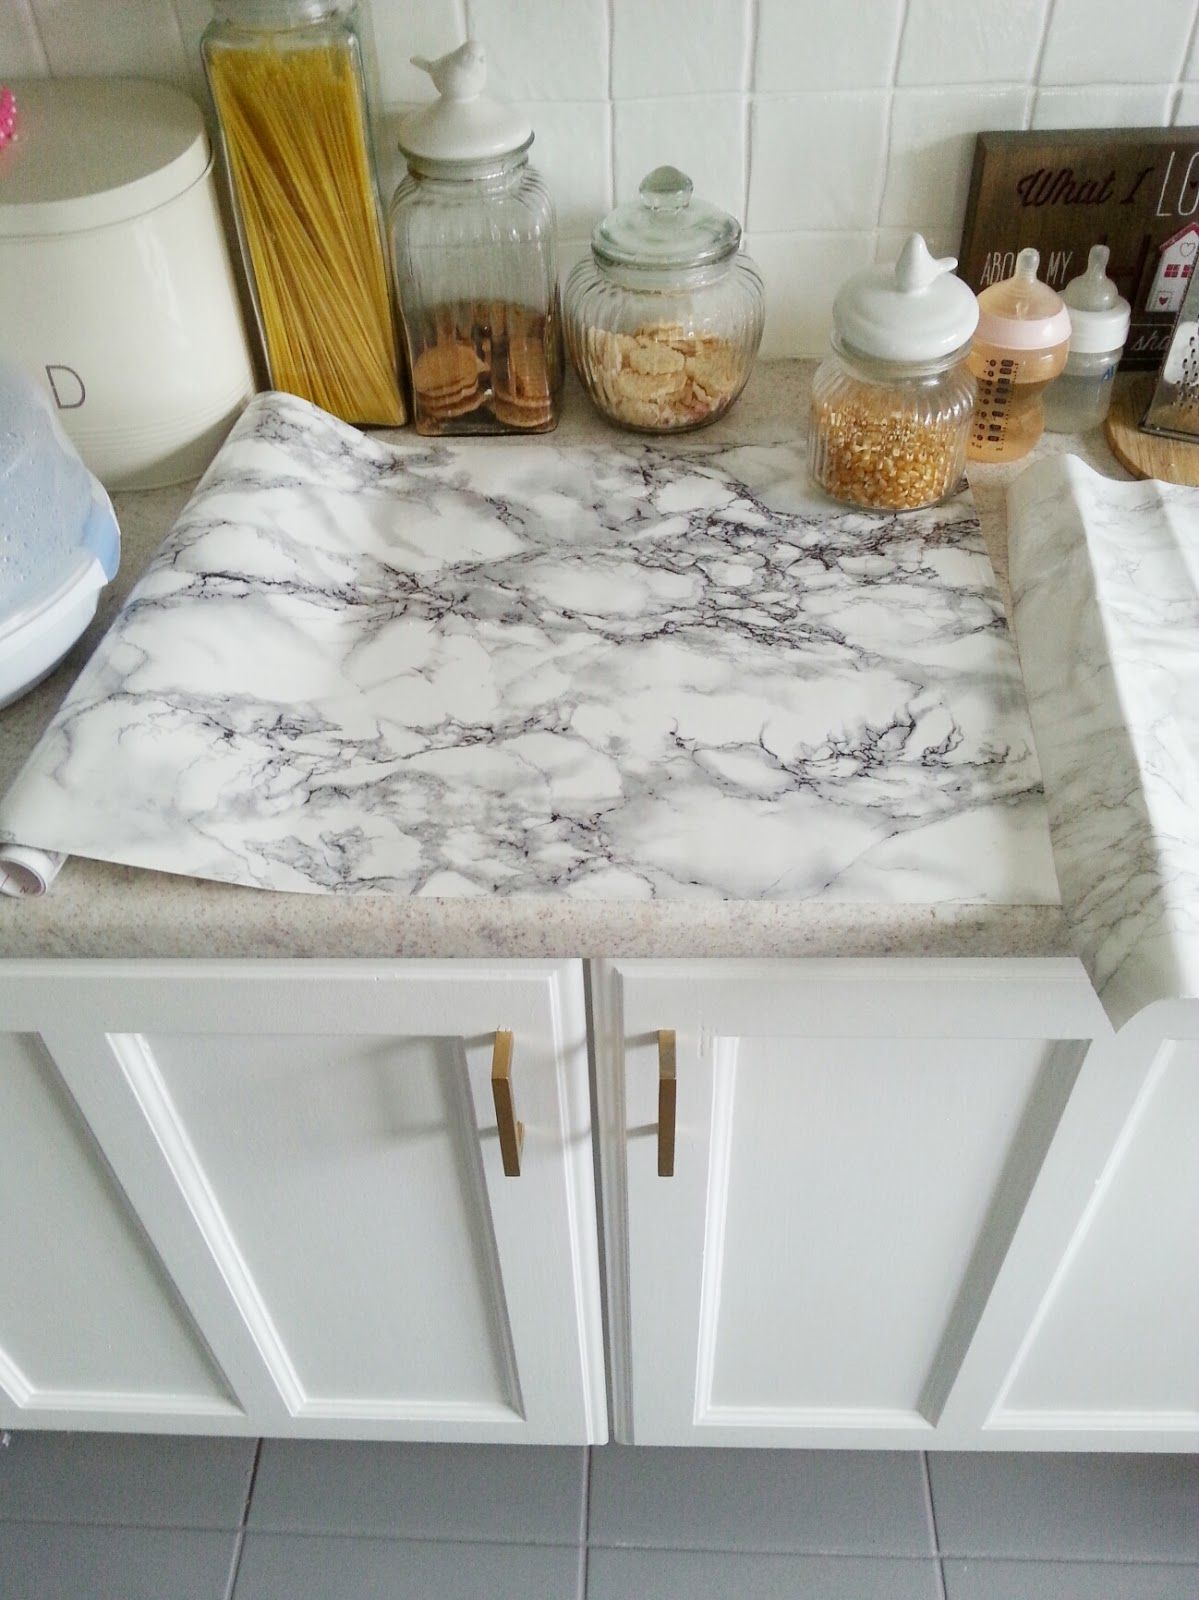 diy super cheap, easy marble look counters done with contact paper.  www.makedoanddiy